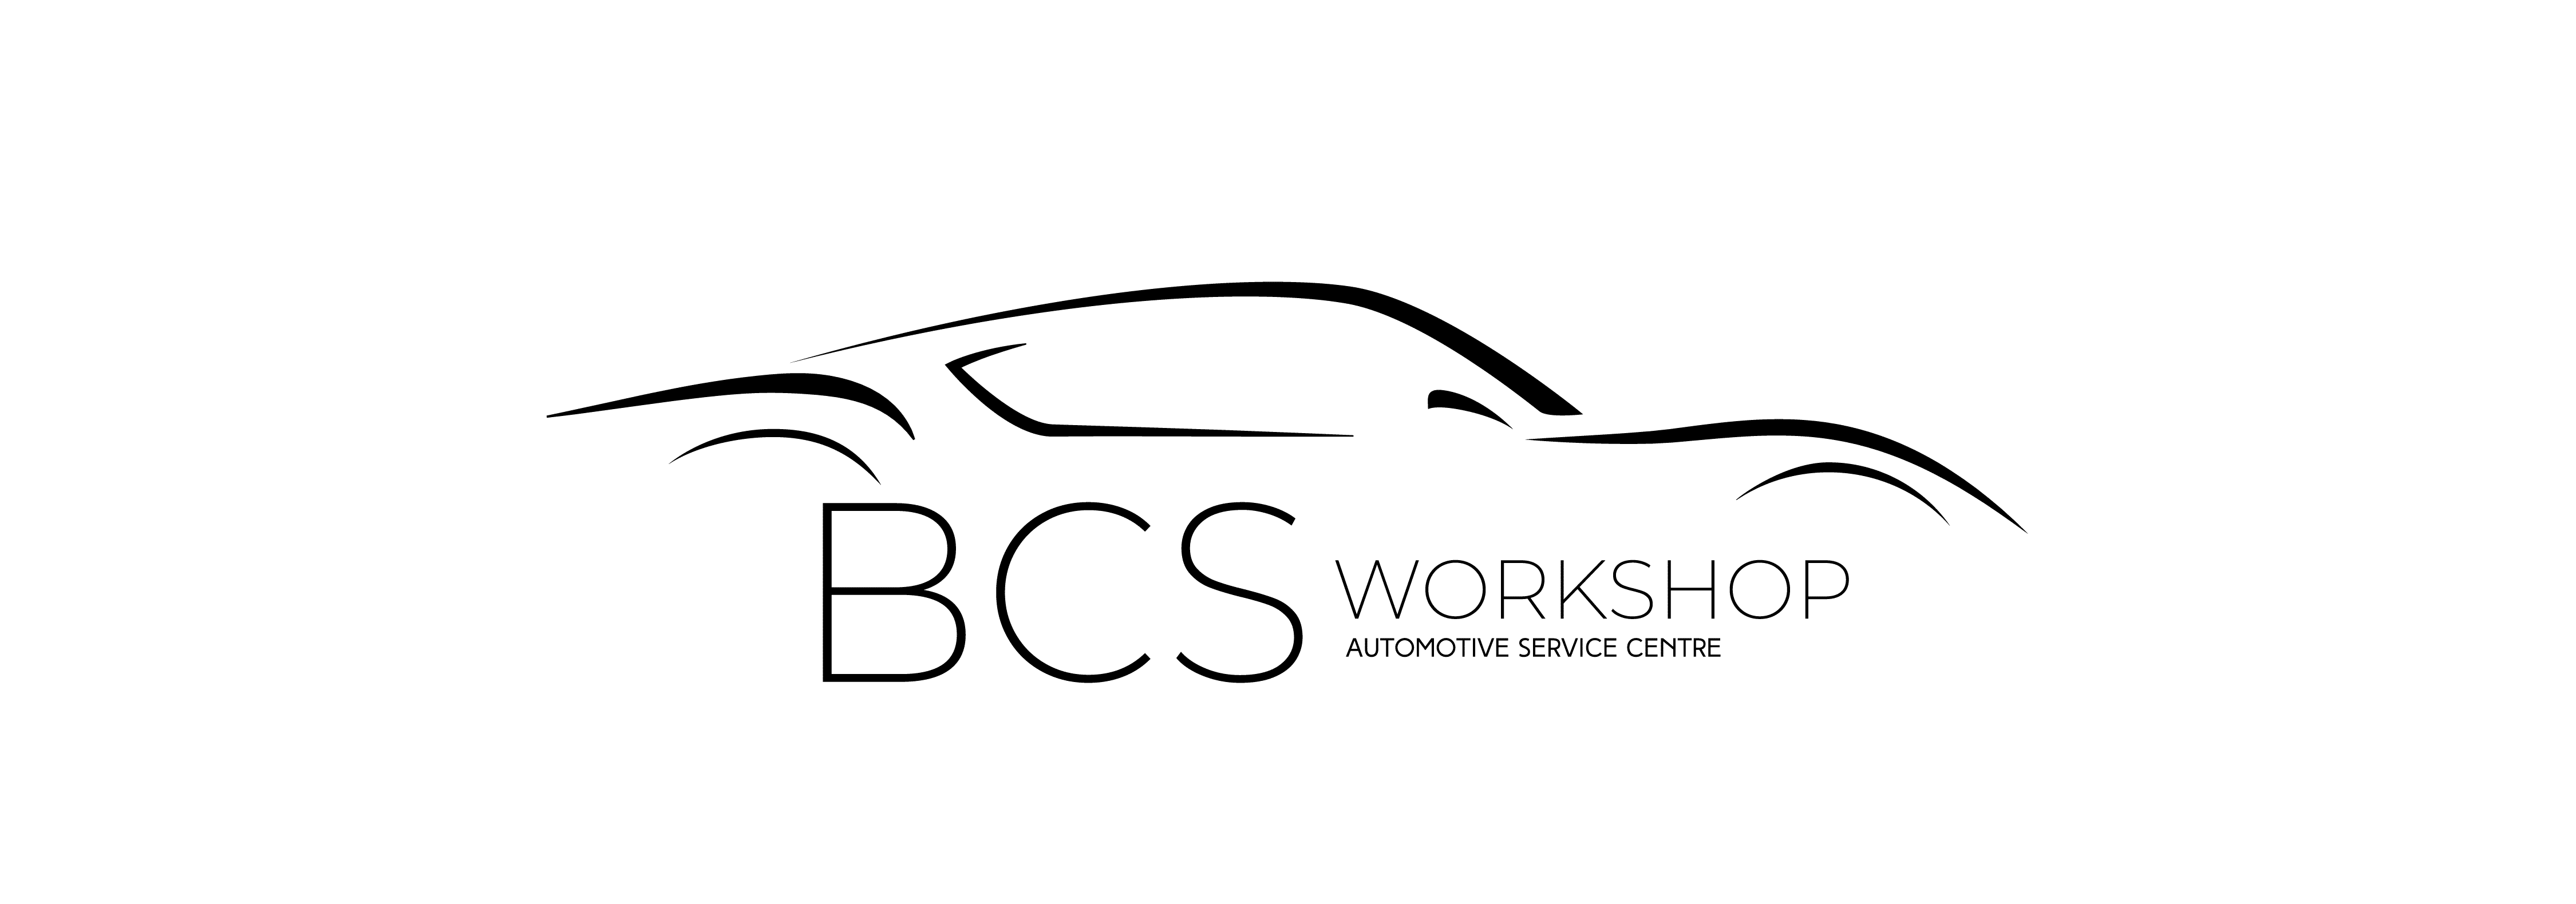 BCS Workshop